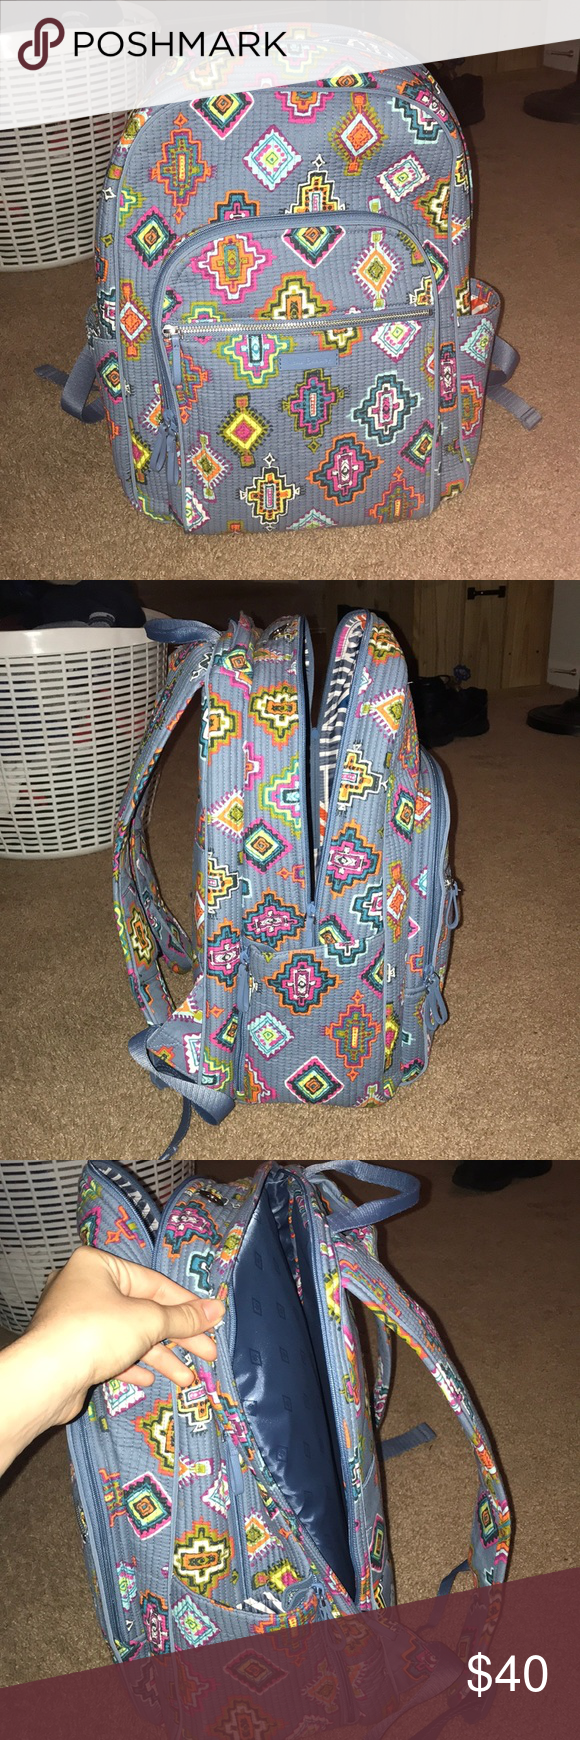 ec17801212 Vera Bradley Painted Medallions print Backpack Vera Bradley backpack with a  computer pocket. The side pockets unzip to expand. Vera Bradley Bags  Backpacks